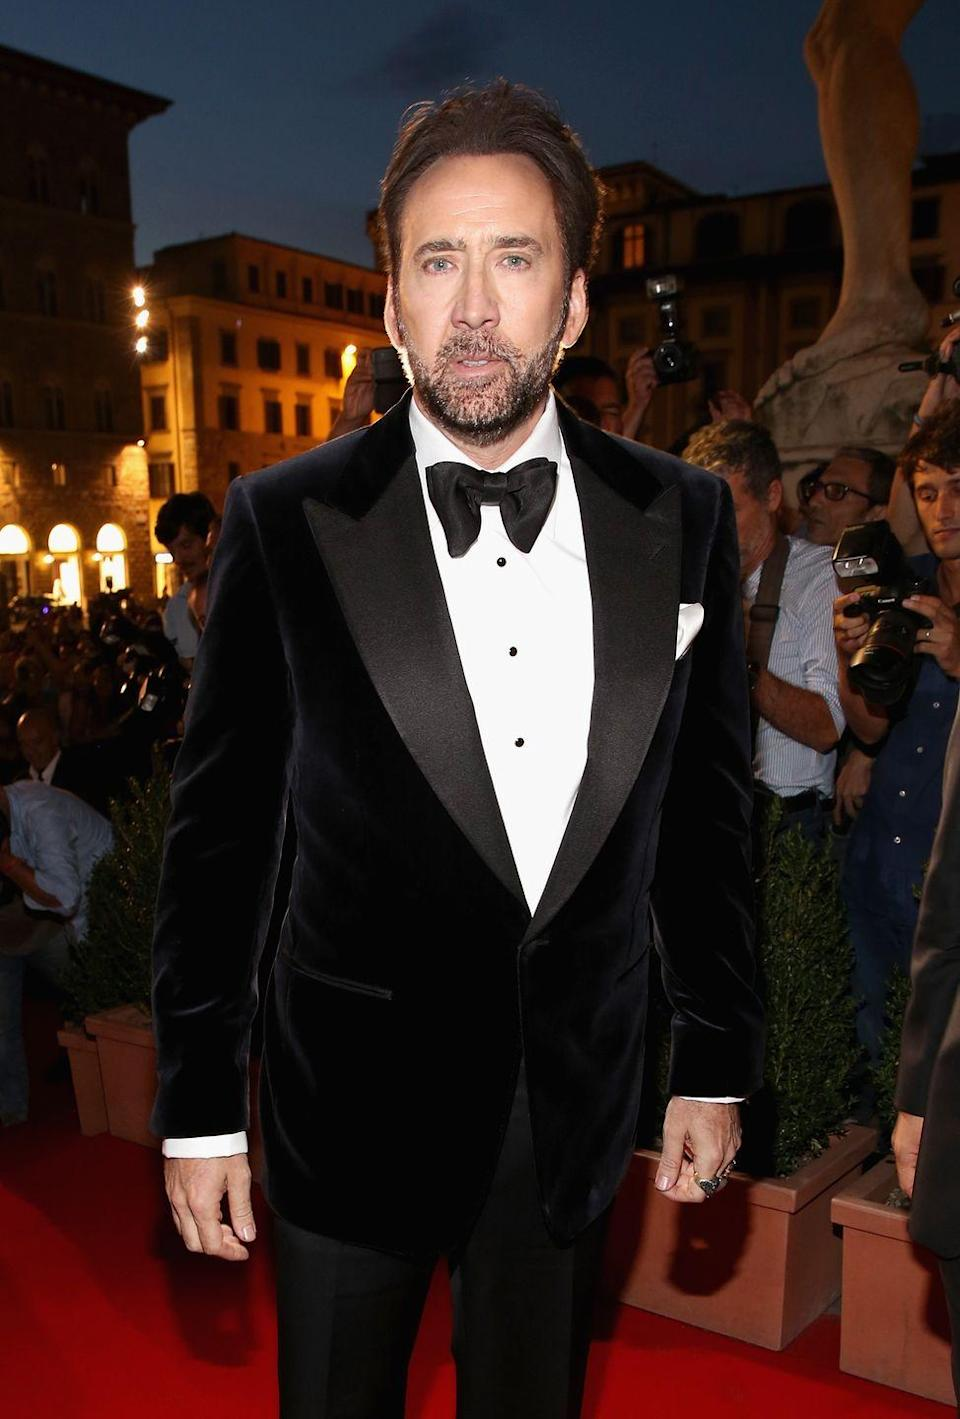 """<p>Nicolas Cage is known for being eccentric, but even we were shocked (and a little confused) when he revealed that he only eats animals who mate in """"a <a href=""""https://www.telegraph.co.uk/news/celebritynews/7739028/Nicolas-Cage-reveals-bizarre-diet-of-animals-that-have-dignified-sex.html"""" rel=""""nofollow noopener"""" target=""""_blank"""" data-ylk=""""slk:dignified way"""" class=""""link rapid-noclick-resp"""">dignified way</a>.""""</p>"""